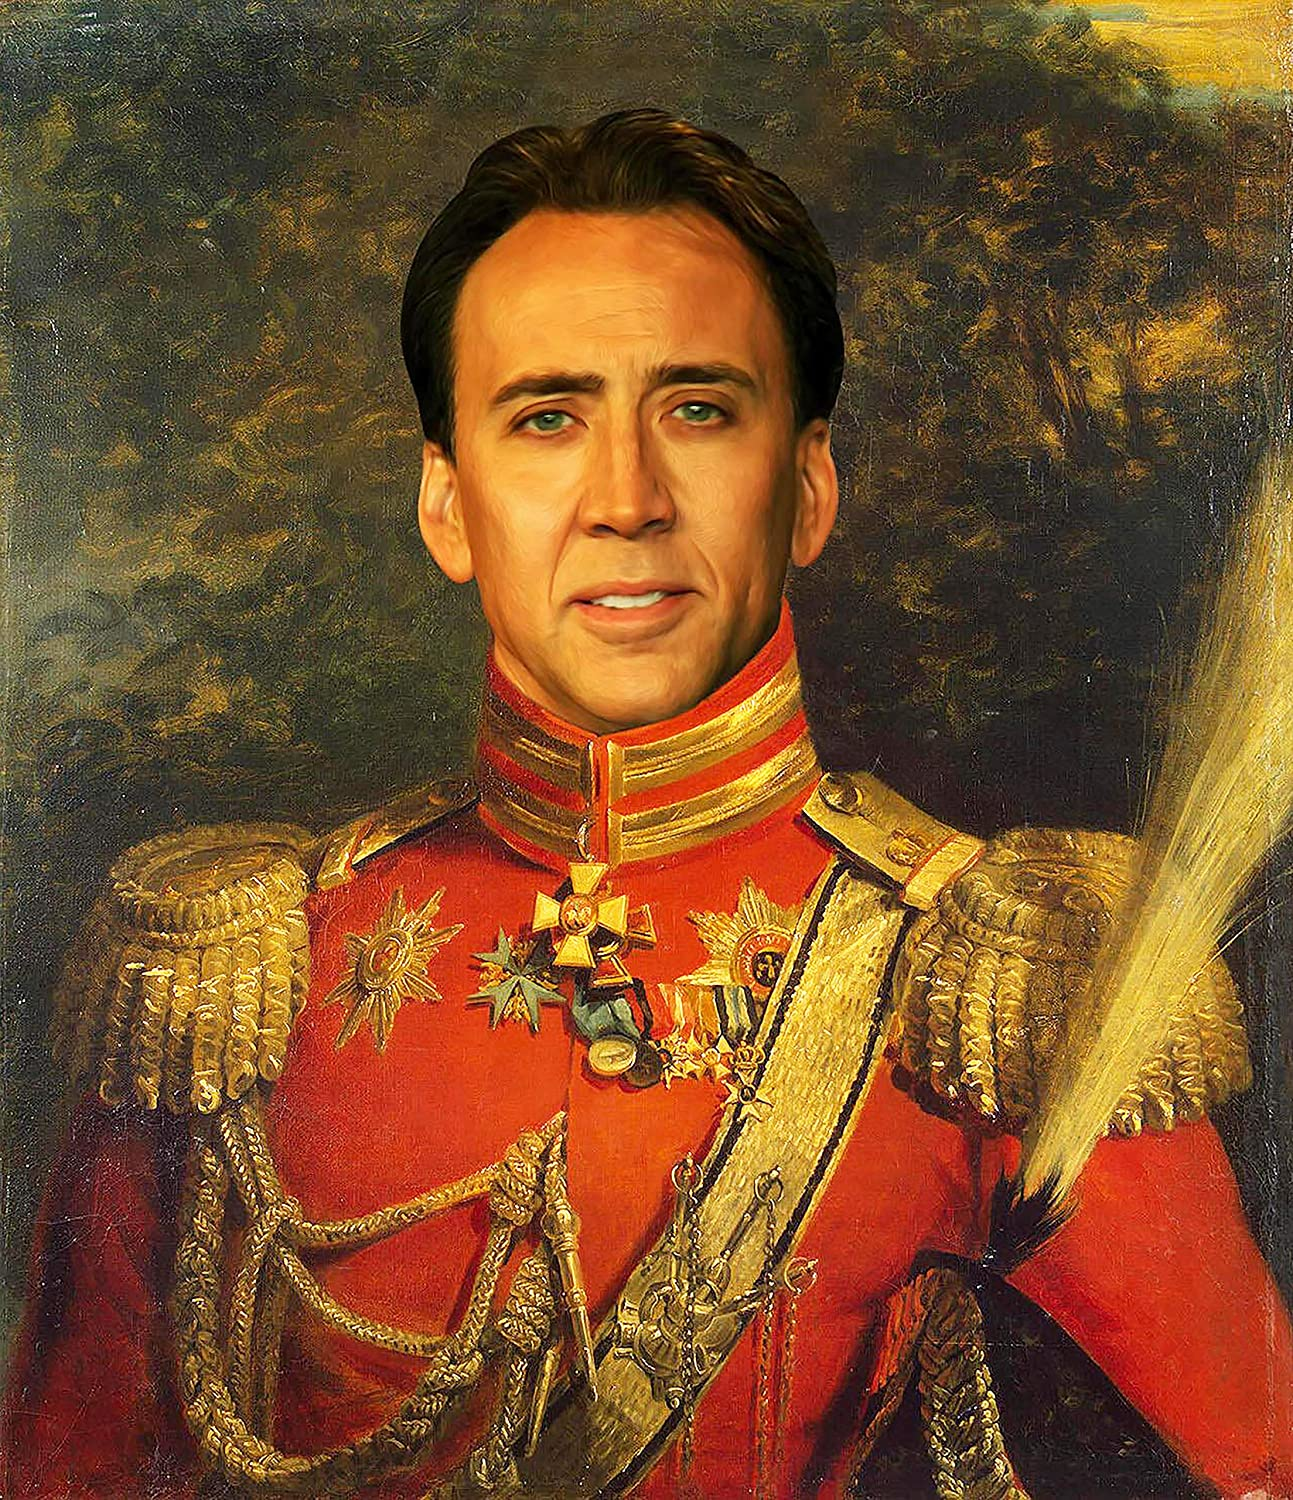 Nicolas Cage Poster - Funny Celebrity Art - Faux Oil Painting Print - Novelty Pop Culture Artwork Gift